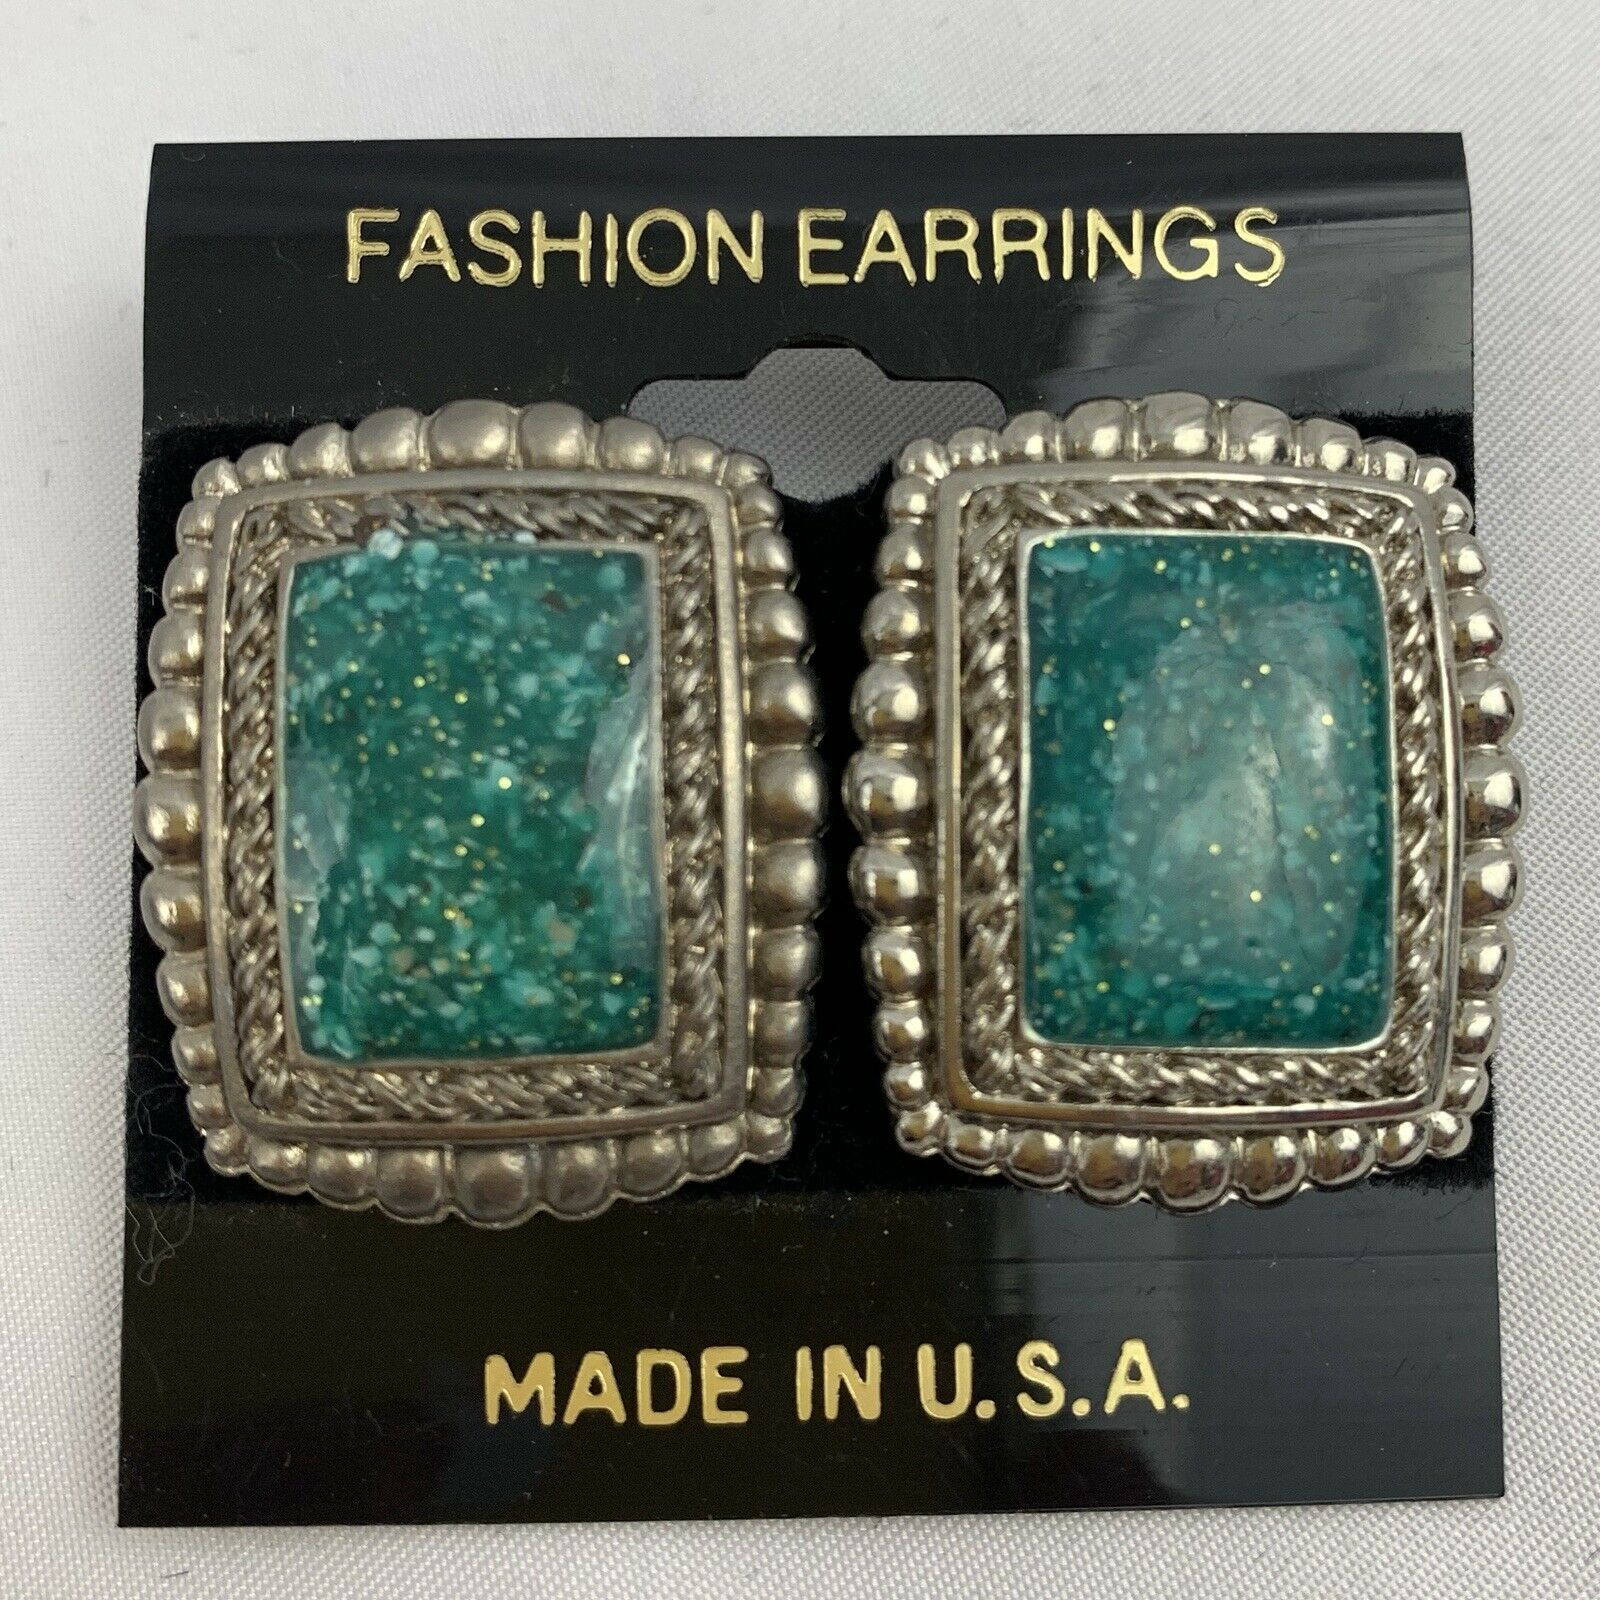 Primary image for Vintage Plastic Shimmery Faux Turquoise Earrings Square Silver Tone NOS 80s 90s